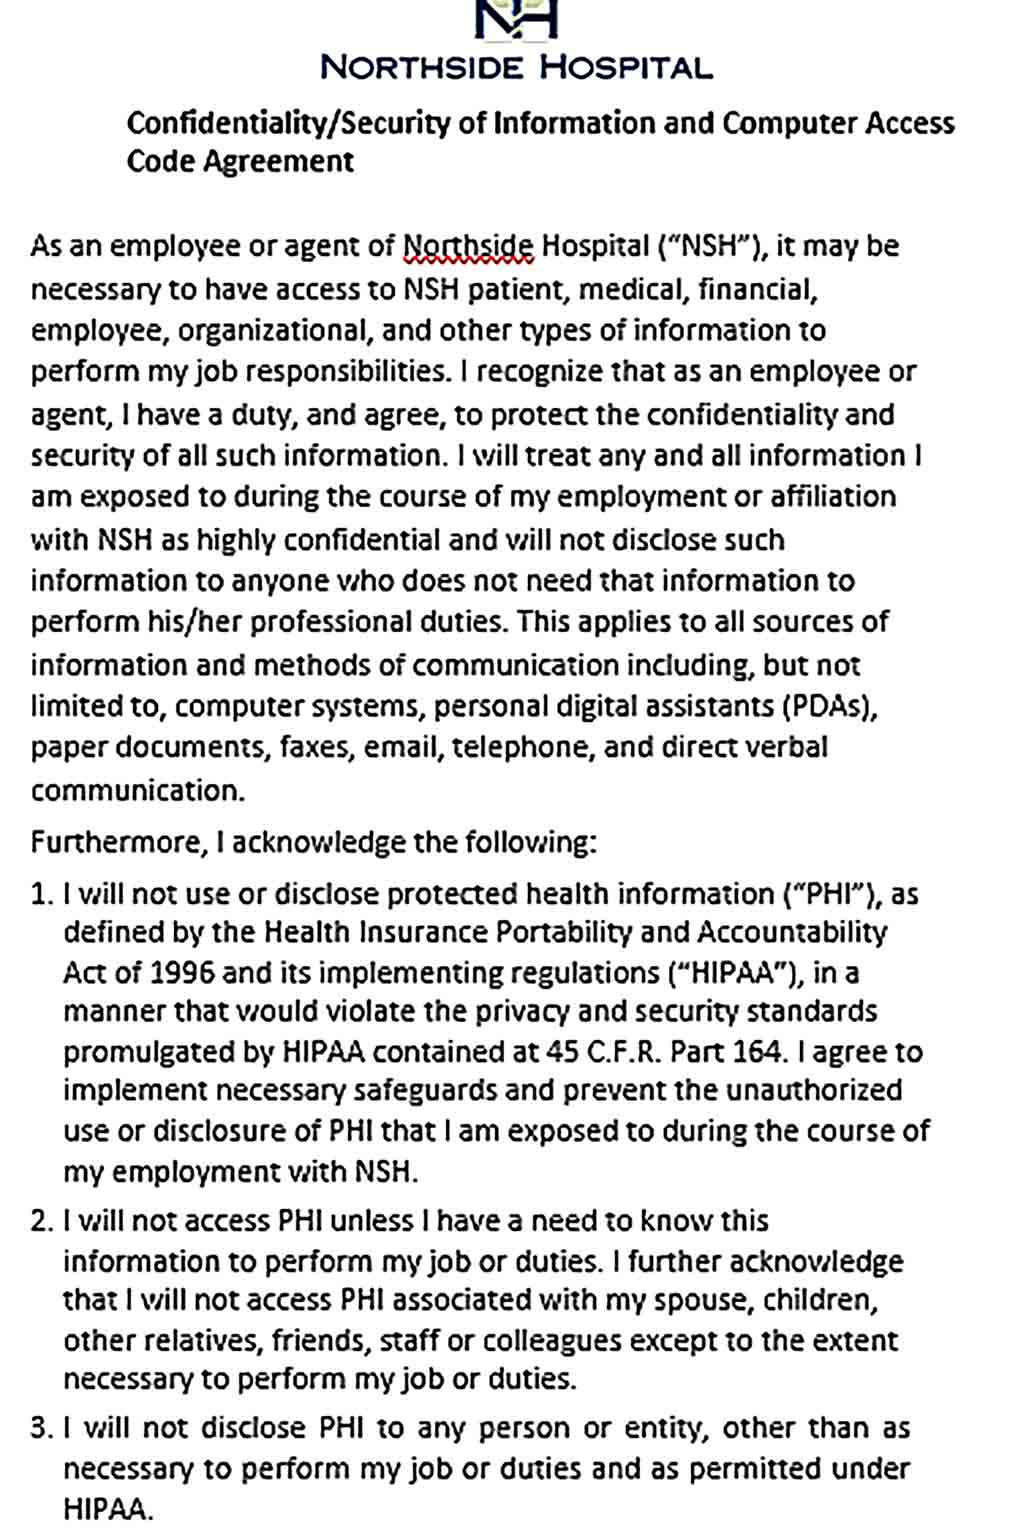 Sample Computer Security Confidentiality Agreement